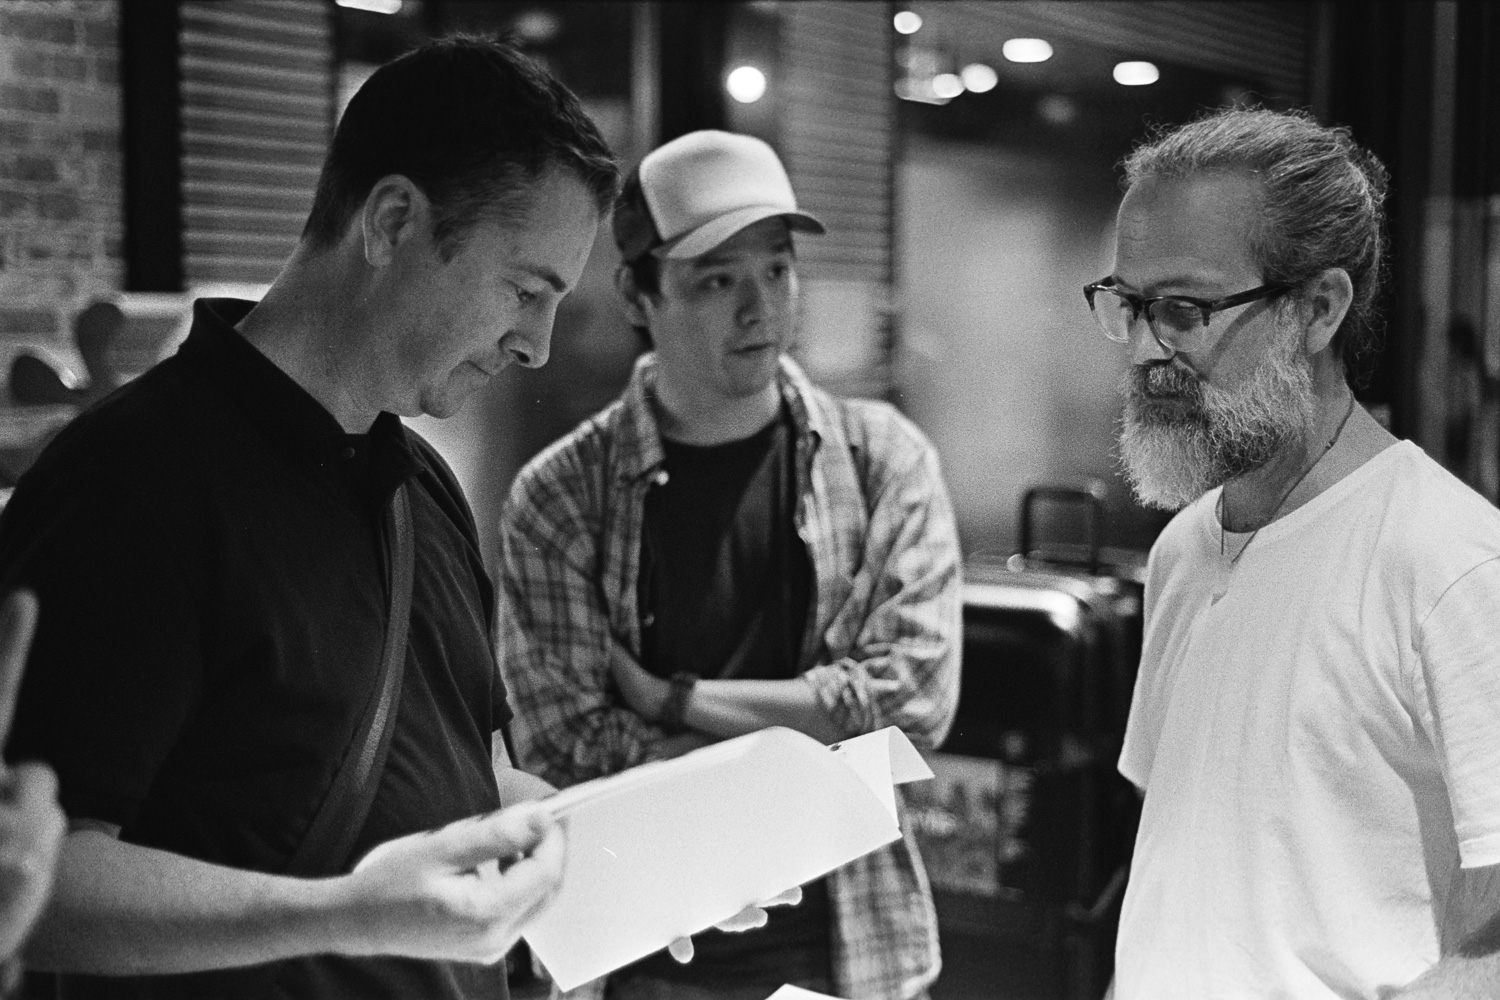 Mark, Rocky and Simon taking a look at a new photo book.